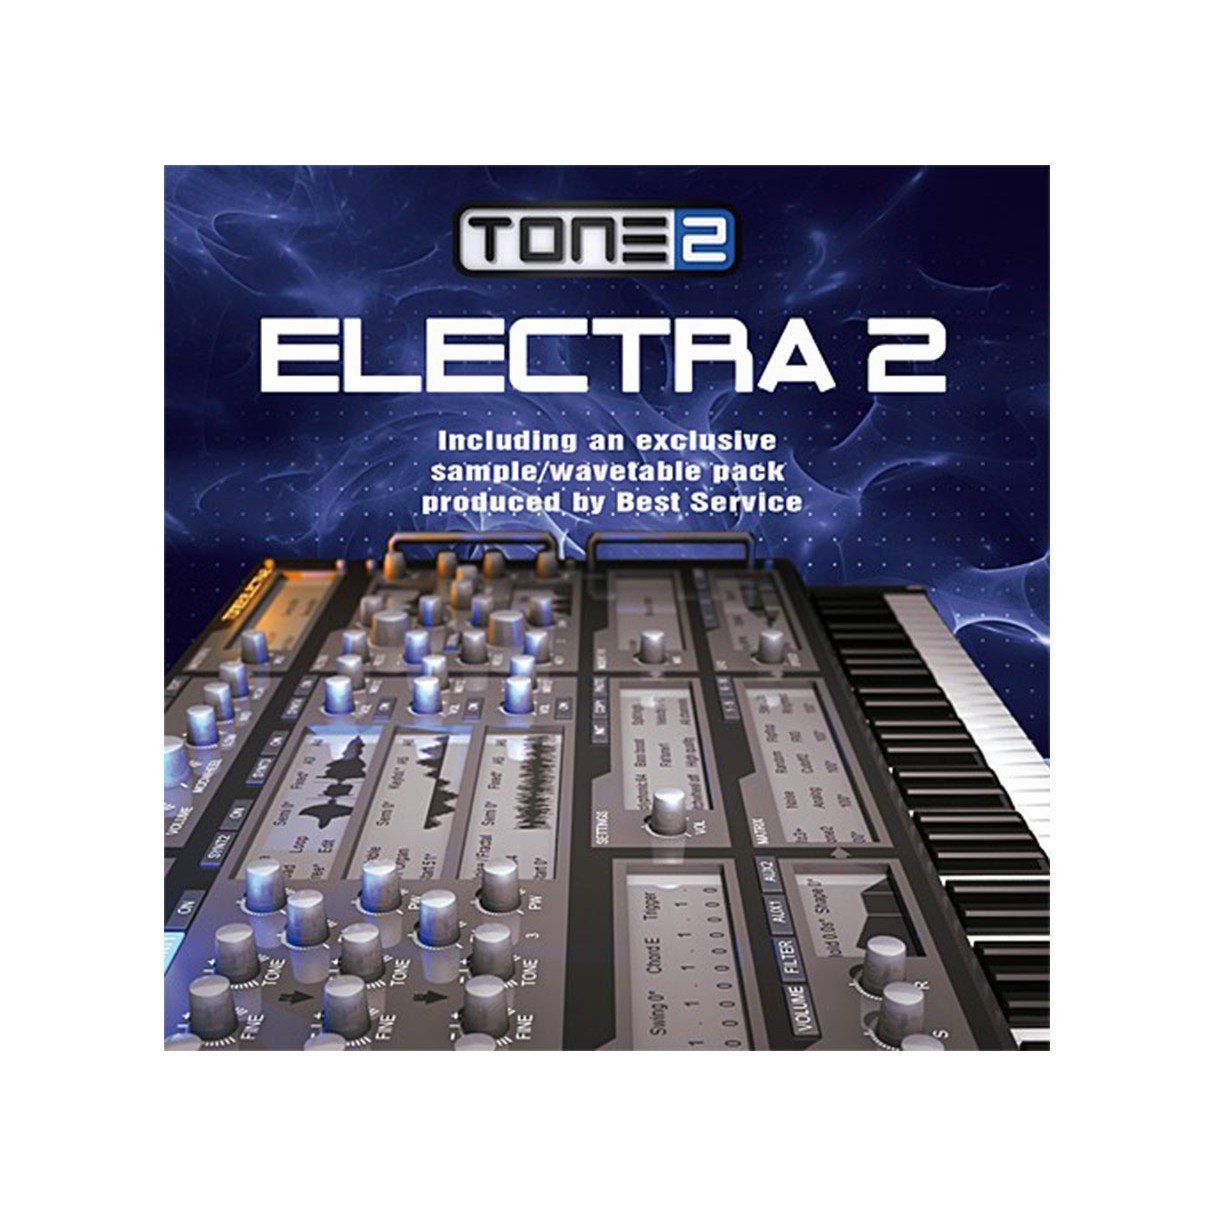 Tone 2 Electra 2 The Only Synth You Need To Create A Hit